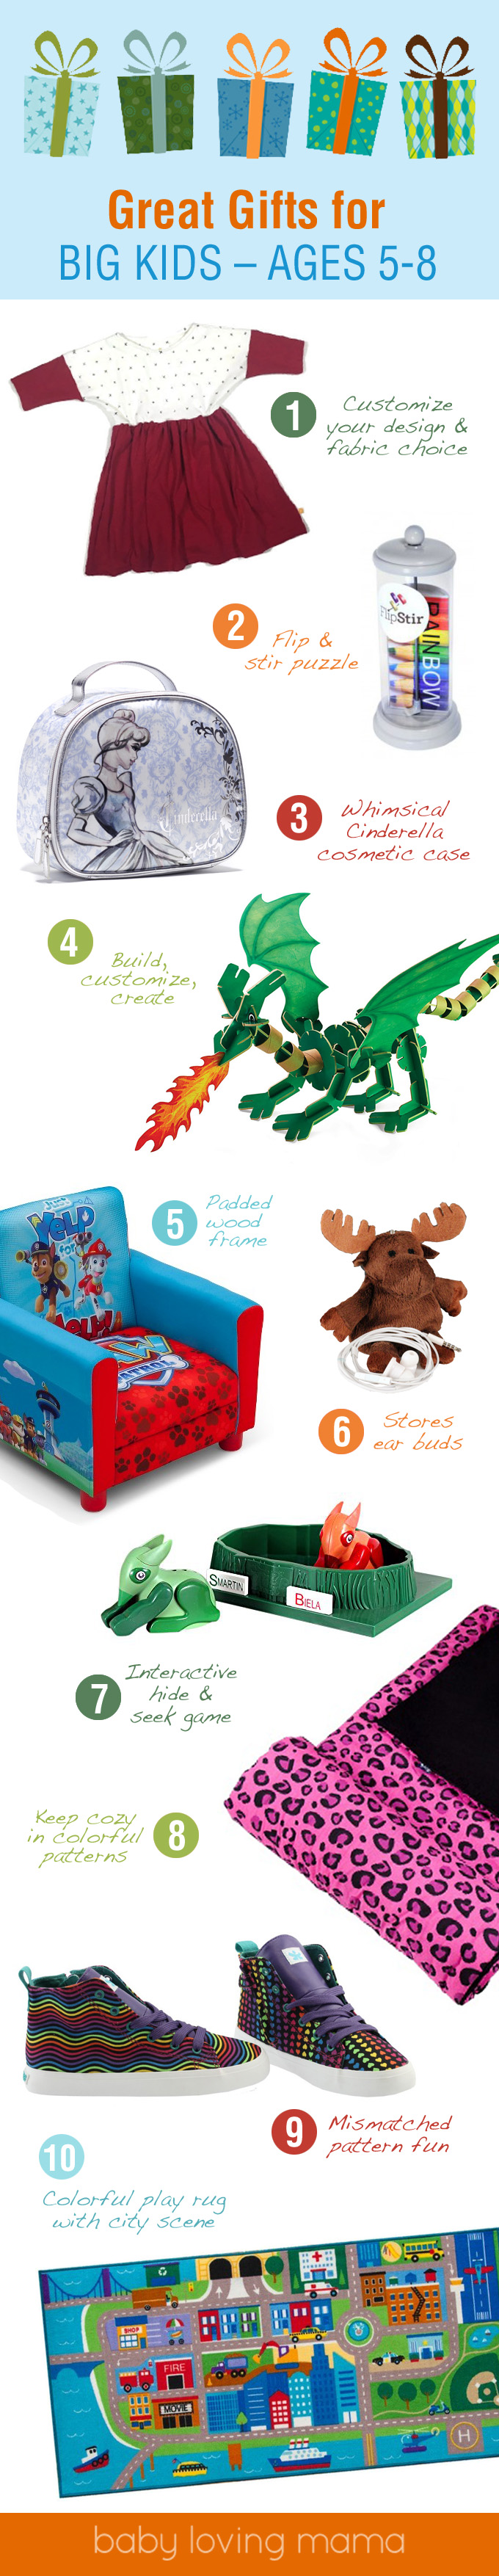 Great Gifts for Big Kids Holiday Gift Guide Roundup